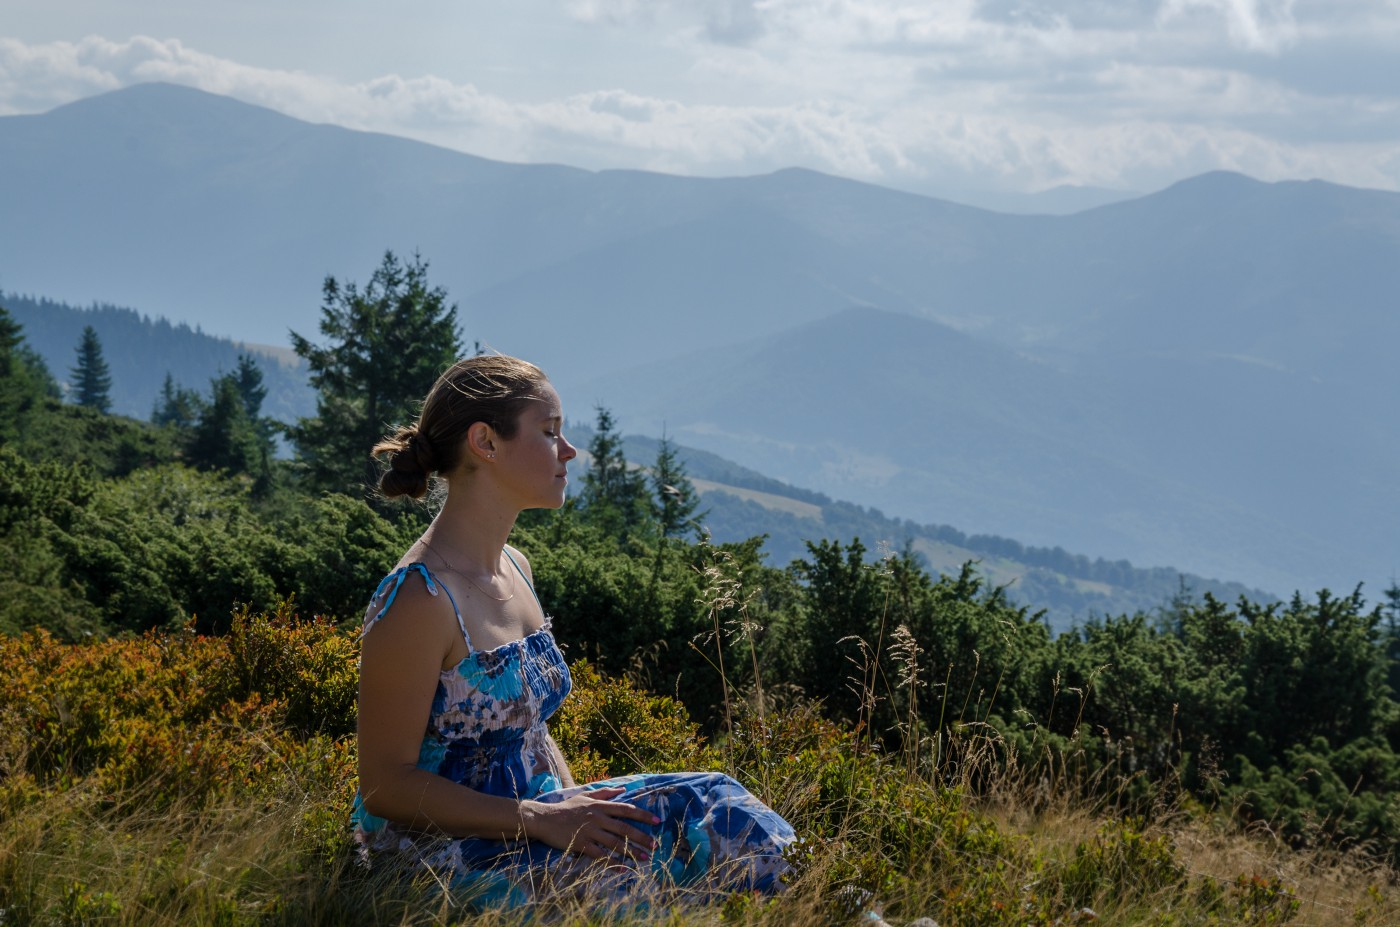 A young woman sits on a sunny hill side while meditating